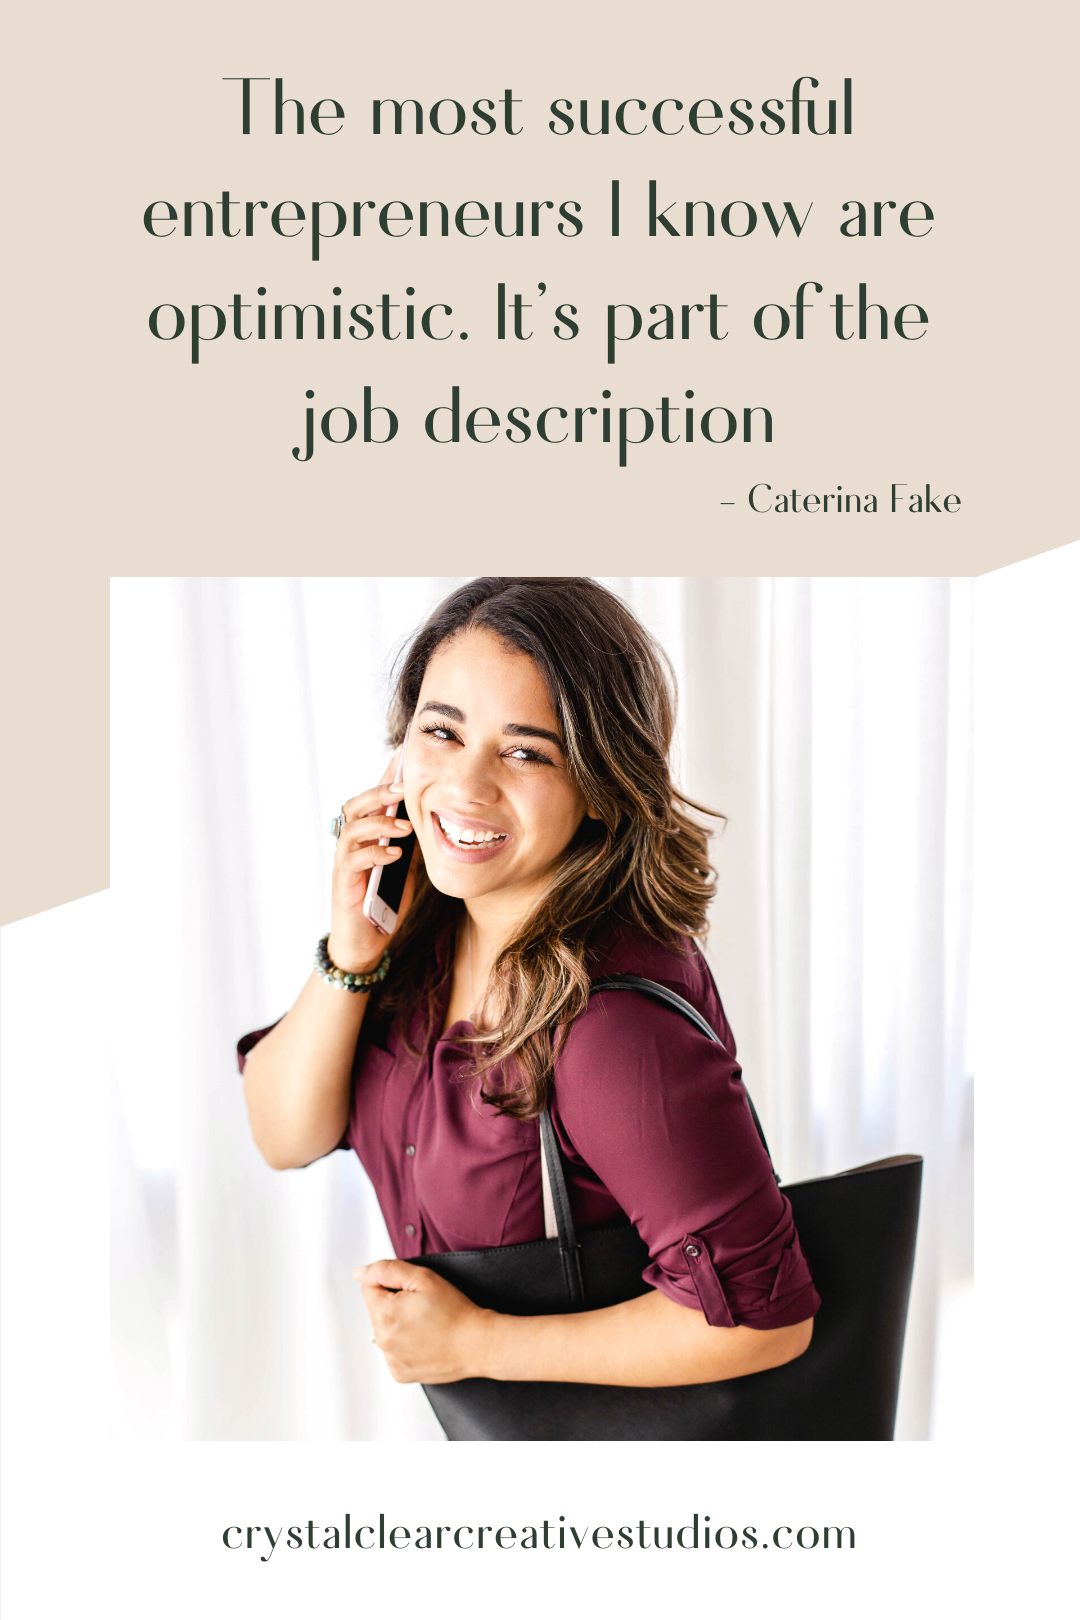 The most successful entrepreneurs I know are optimistic. It's part of the job description.